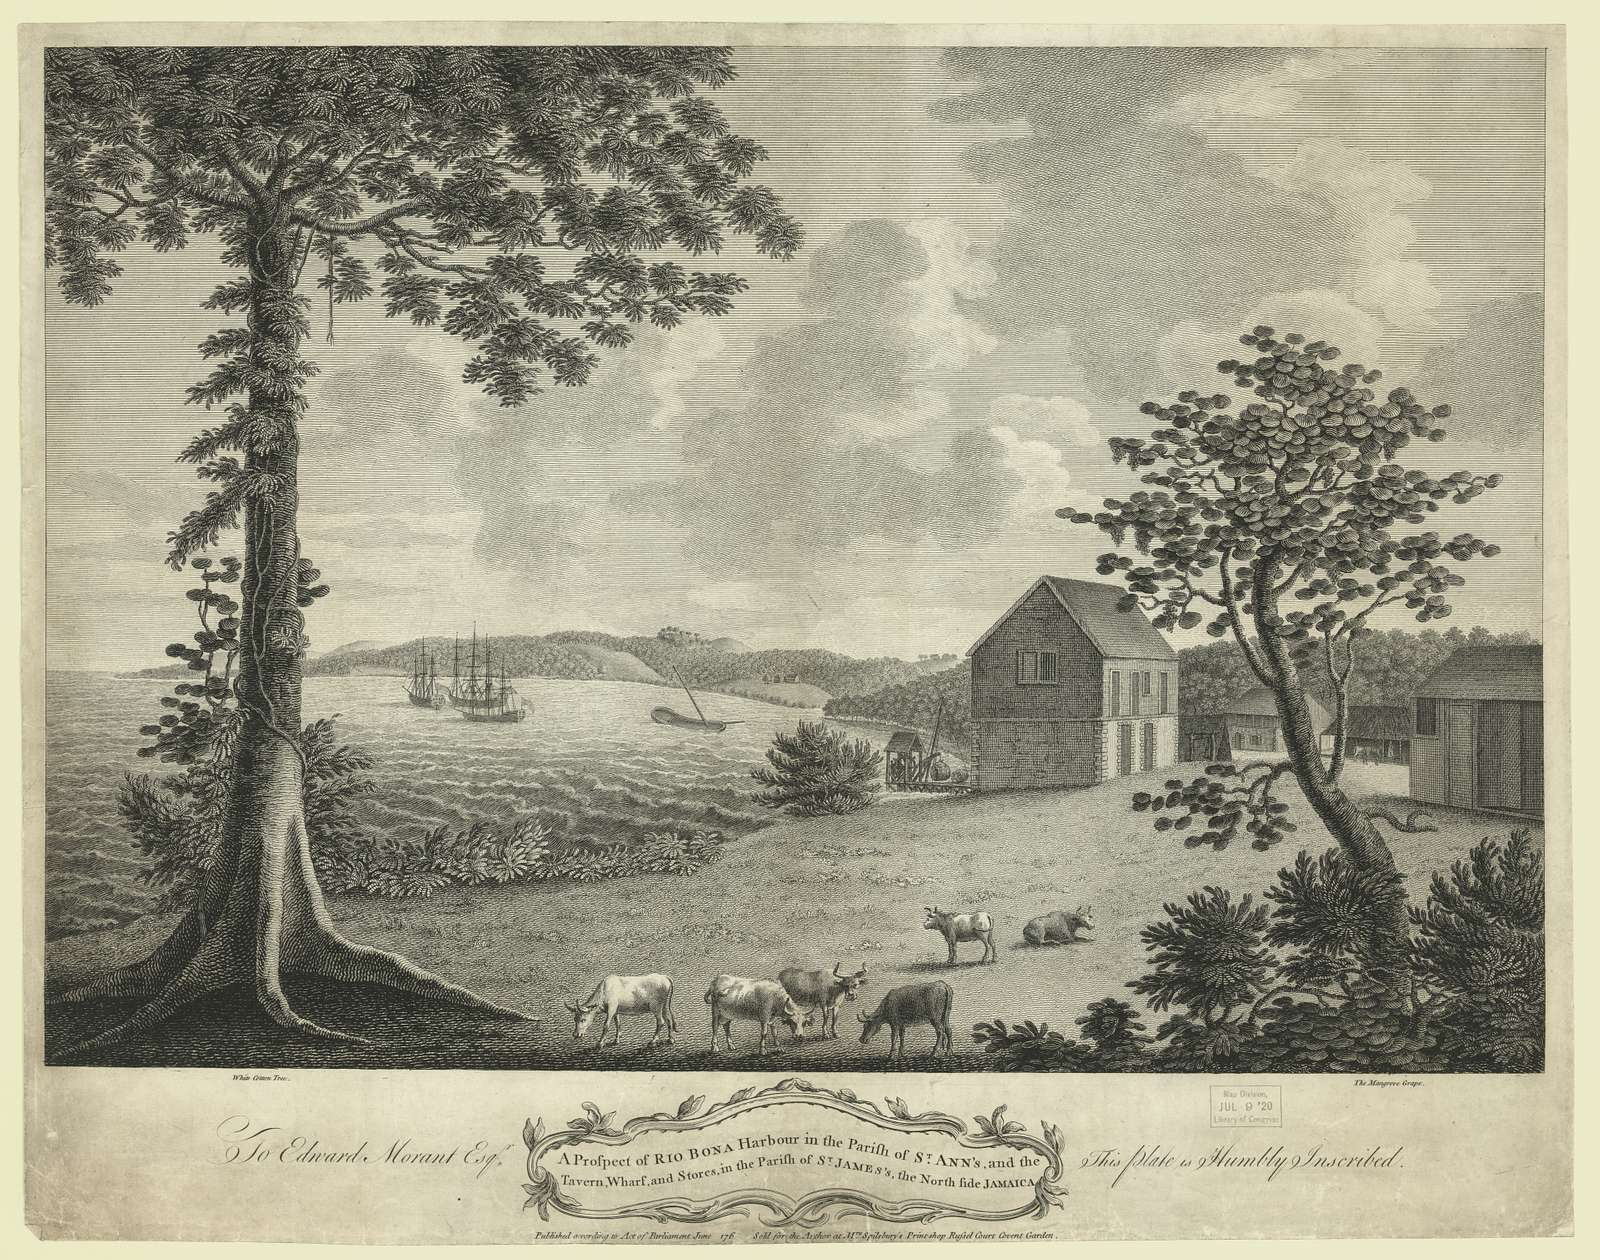 A prospect of Rio Bona harbour in the parish of St. Ann's, and the tavern, wharf, and stores, in the parish of St. James's, the north side Jamaica